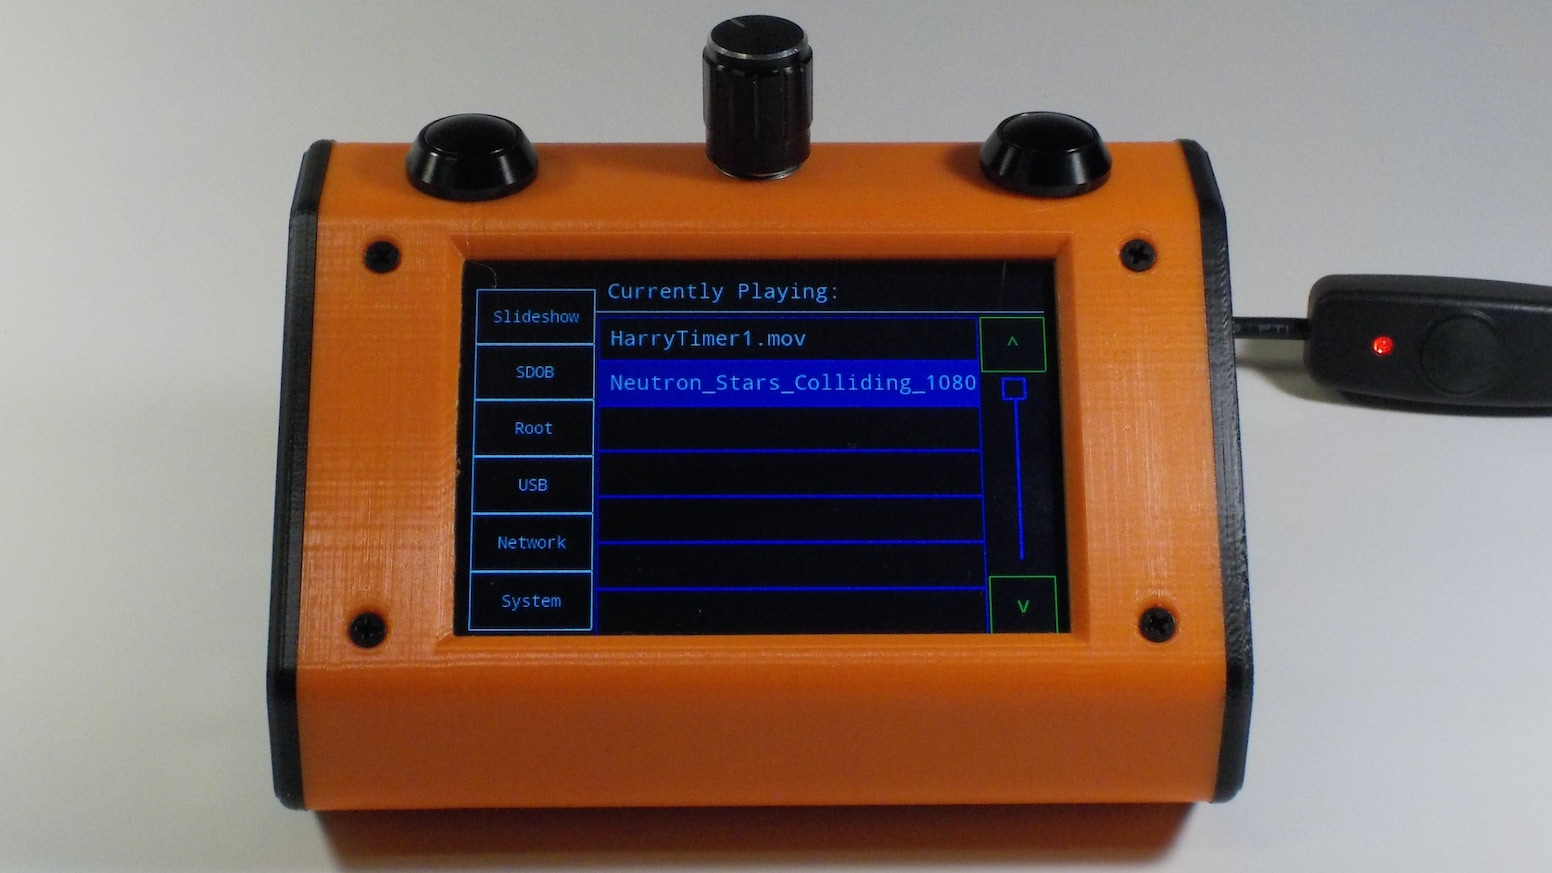 Opensource Handheld Raspberry Pi with Touchscreen